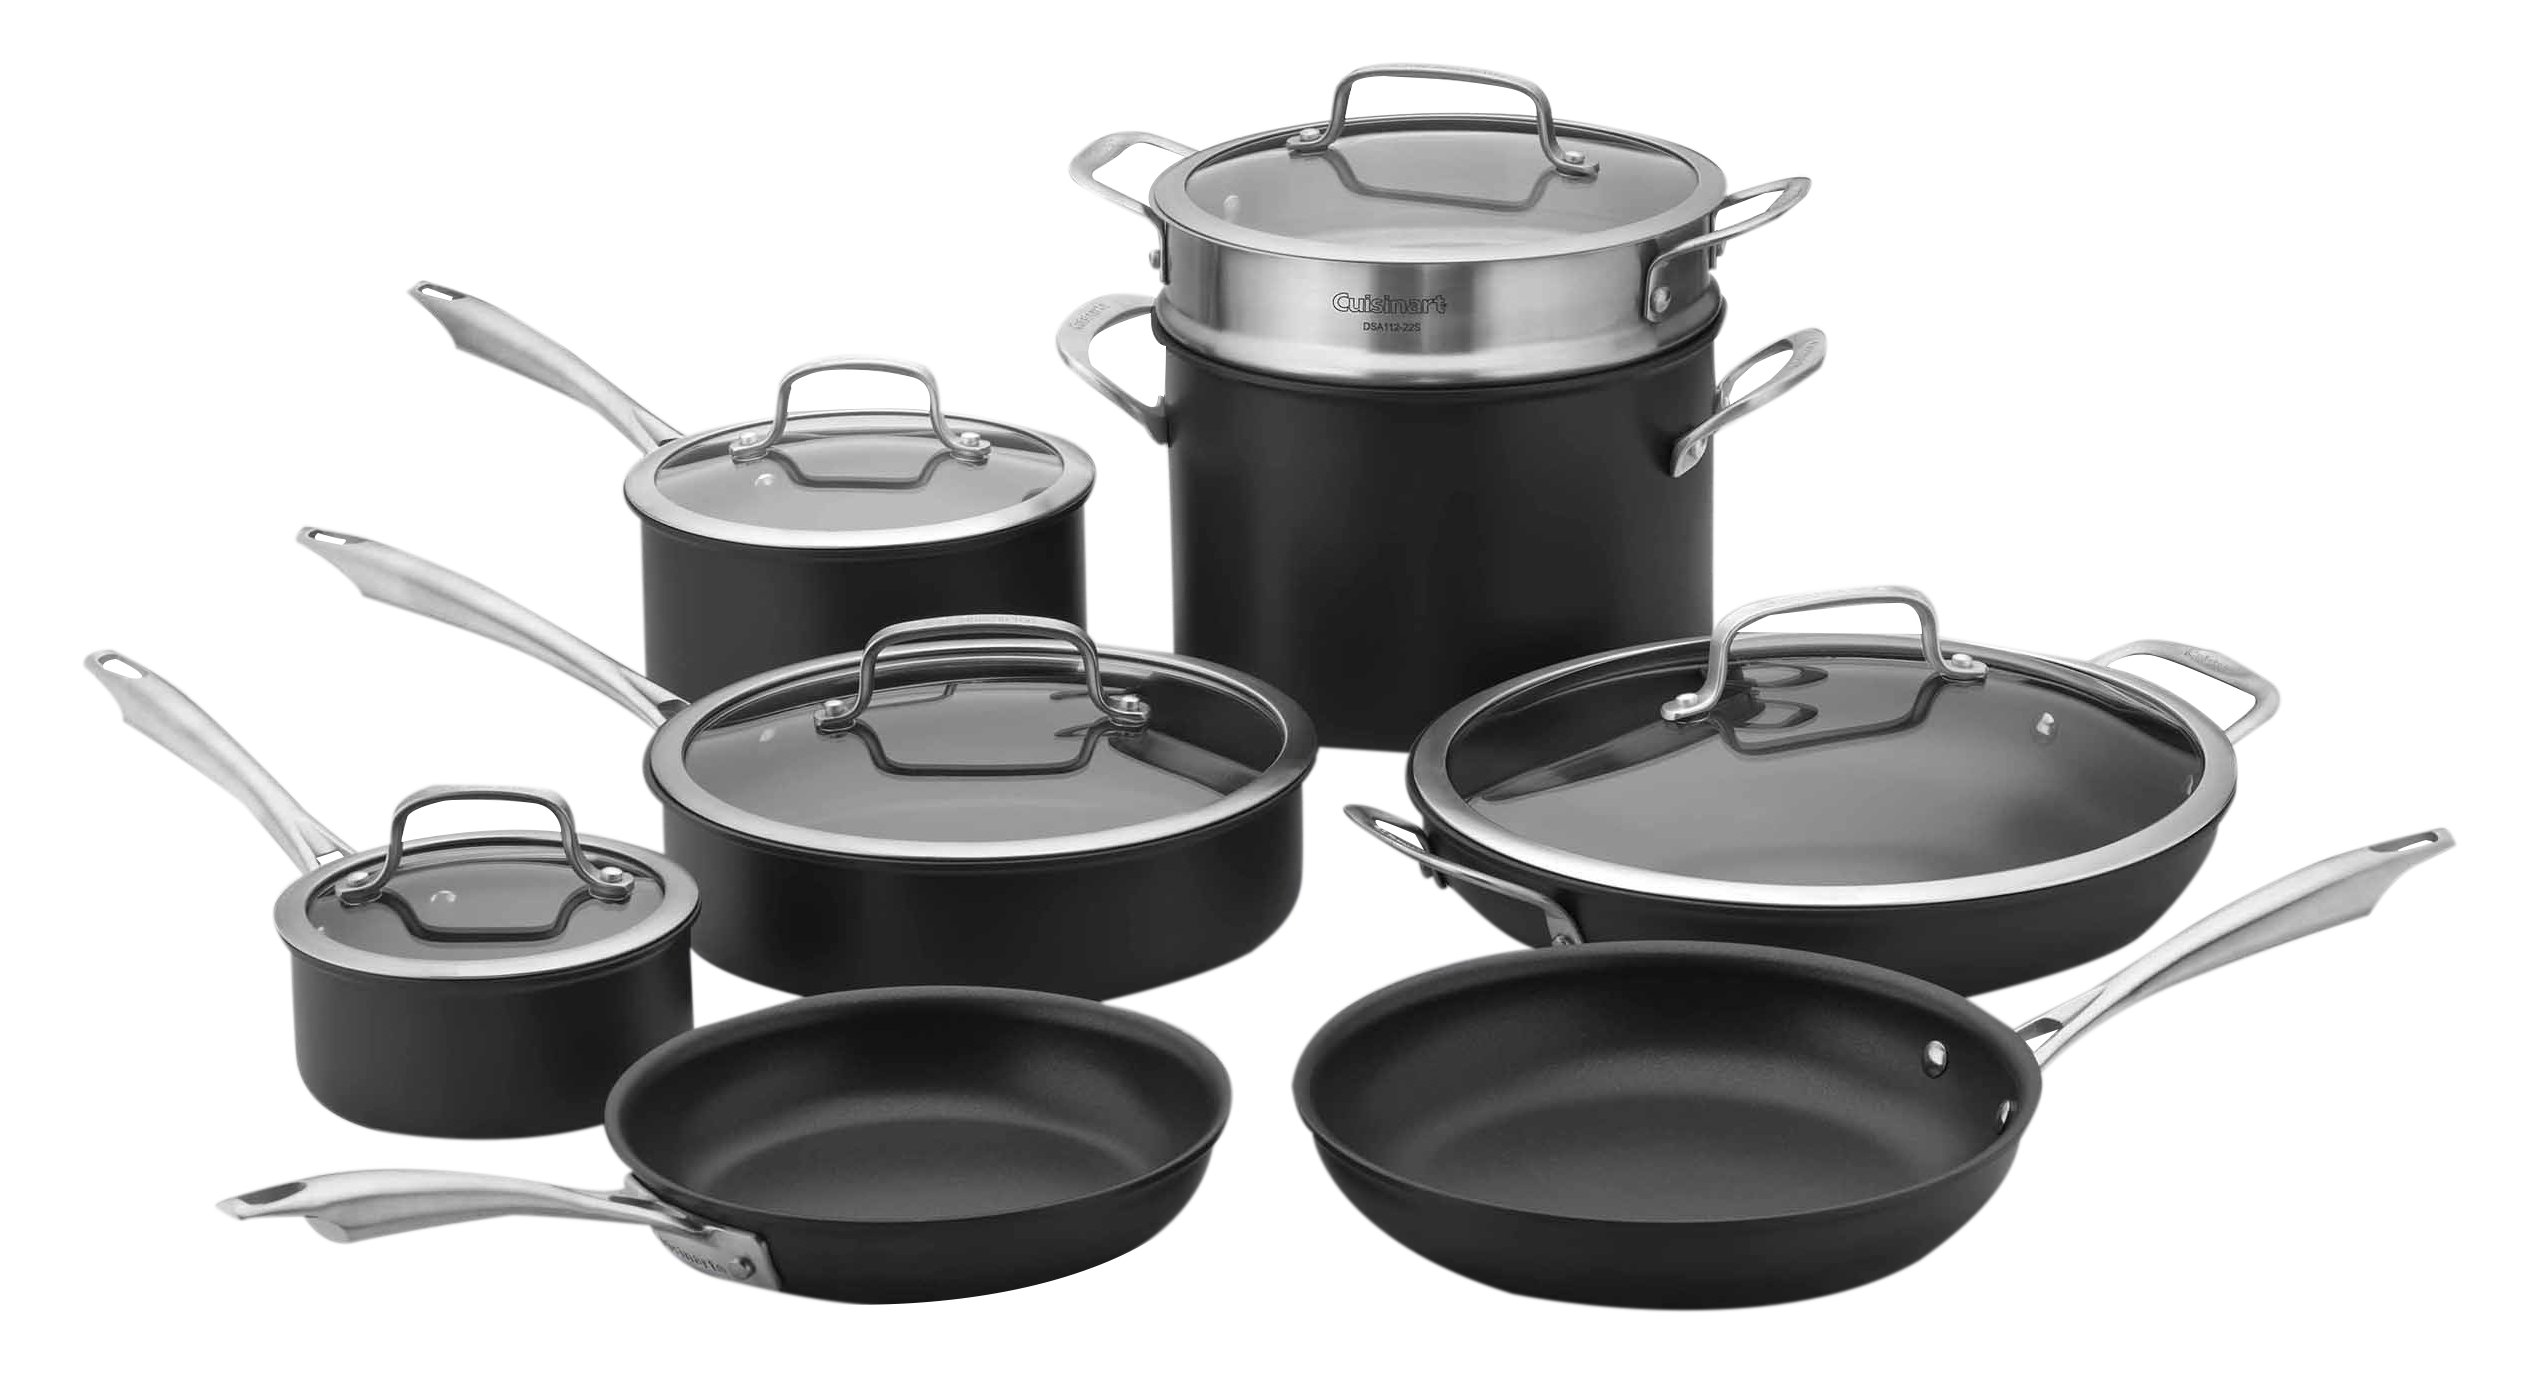 Cuisinart Dishwasher Safe Hard-Anodized 13-Piece Cookware Set, Stainless Steel by Cuisinart